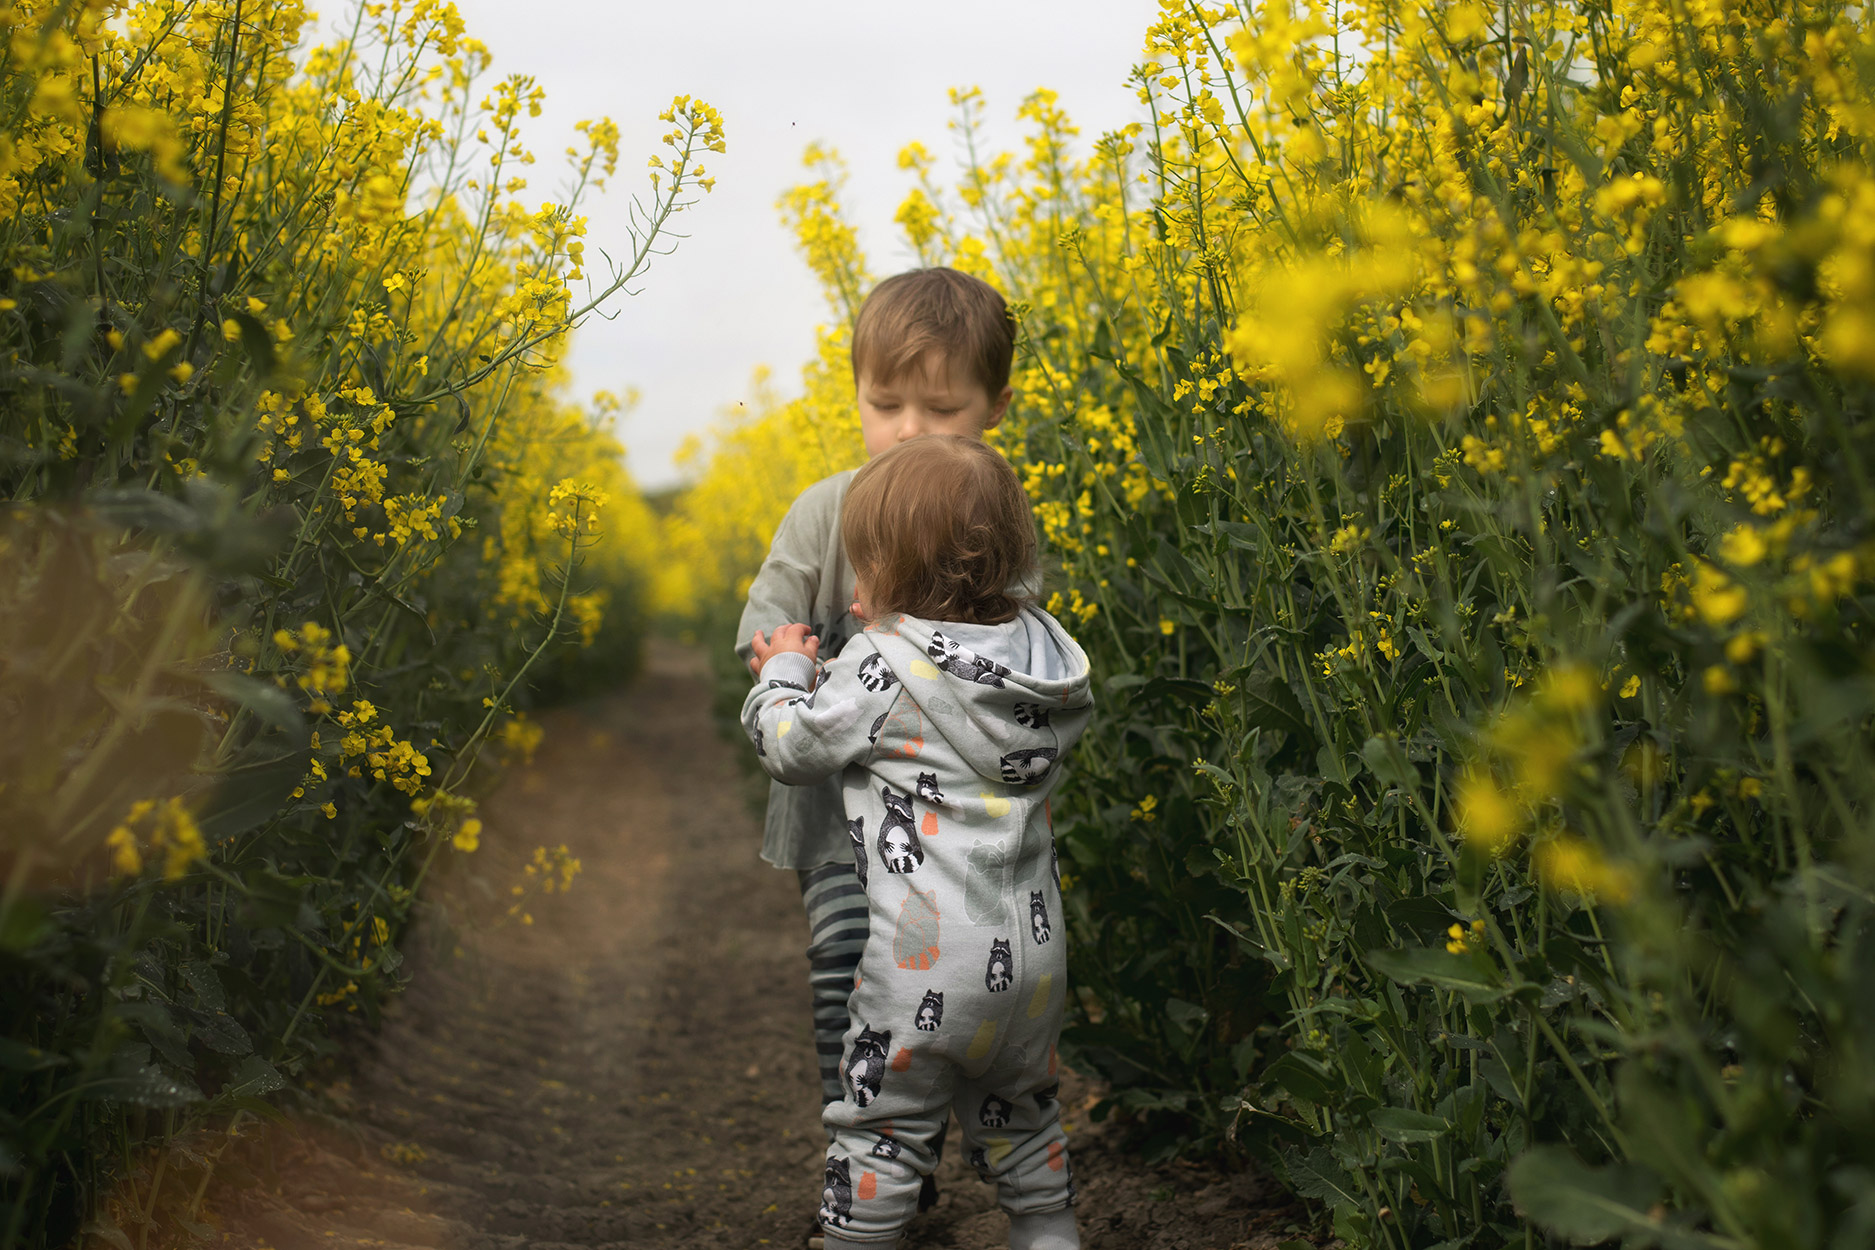 Photoshoot of Mum and two boys amongst yellow rapeseed fields, playing and cuddling her boys who are wearing Bobo Choses, H&M and Filemon Kid